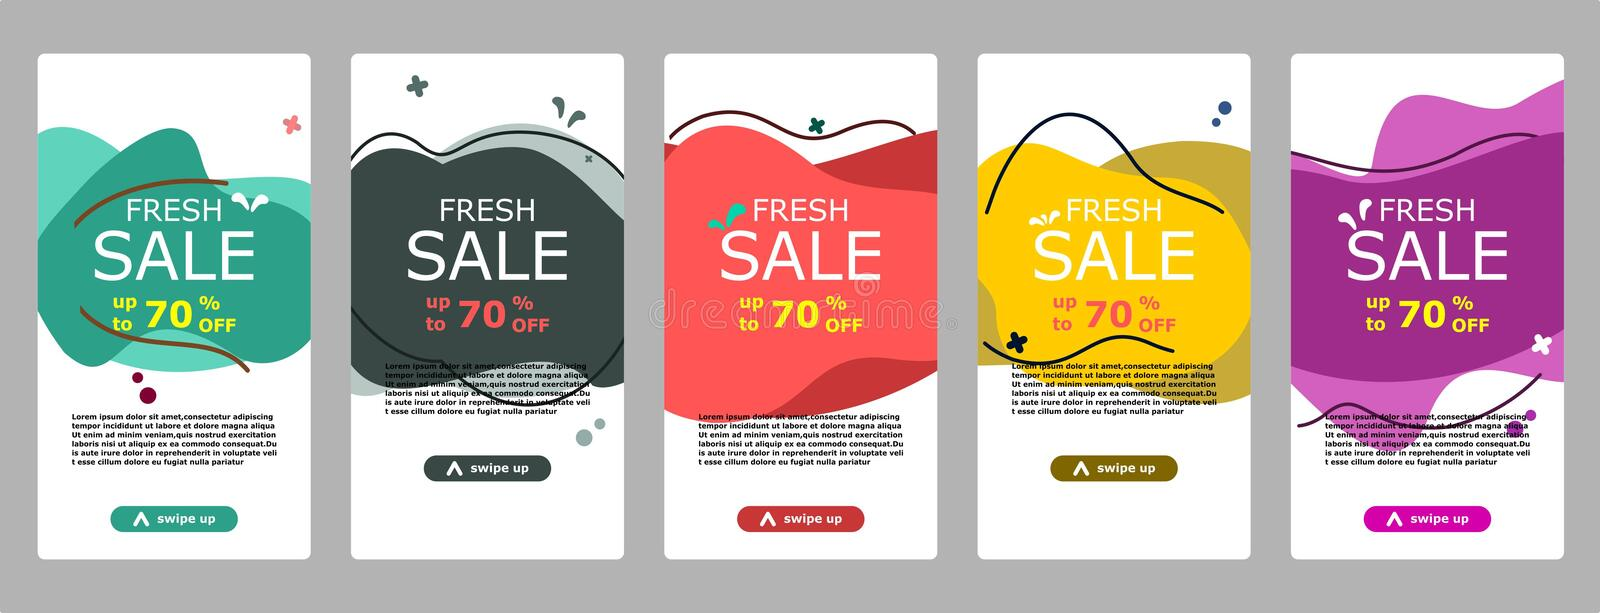 FFlash sale banner dynamic concept for mobile. Sale banner template design, Flash banner sale special offer set vector illustration